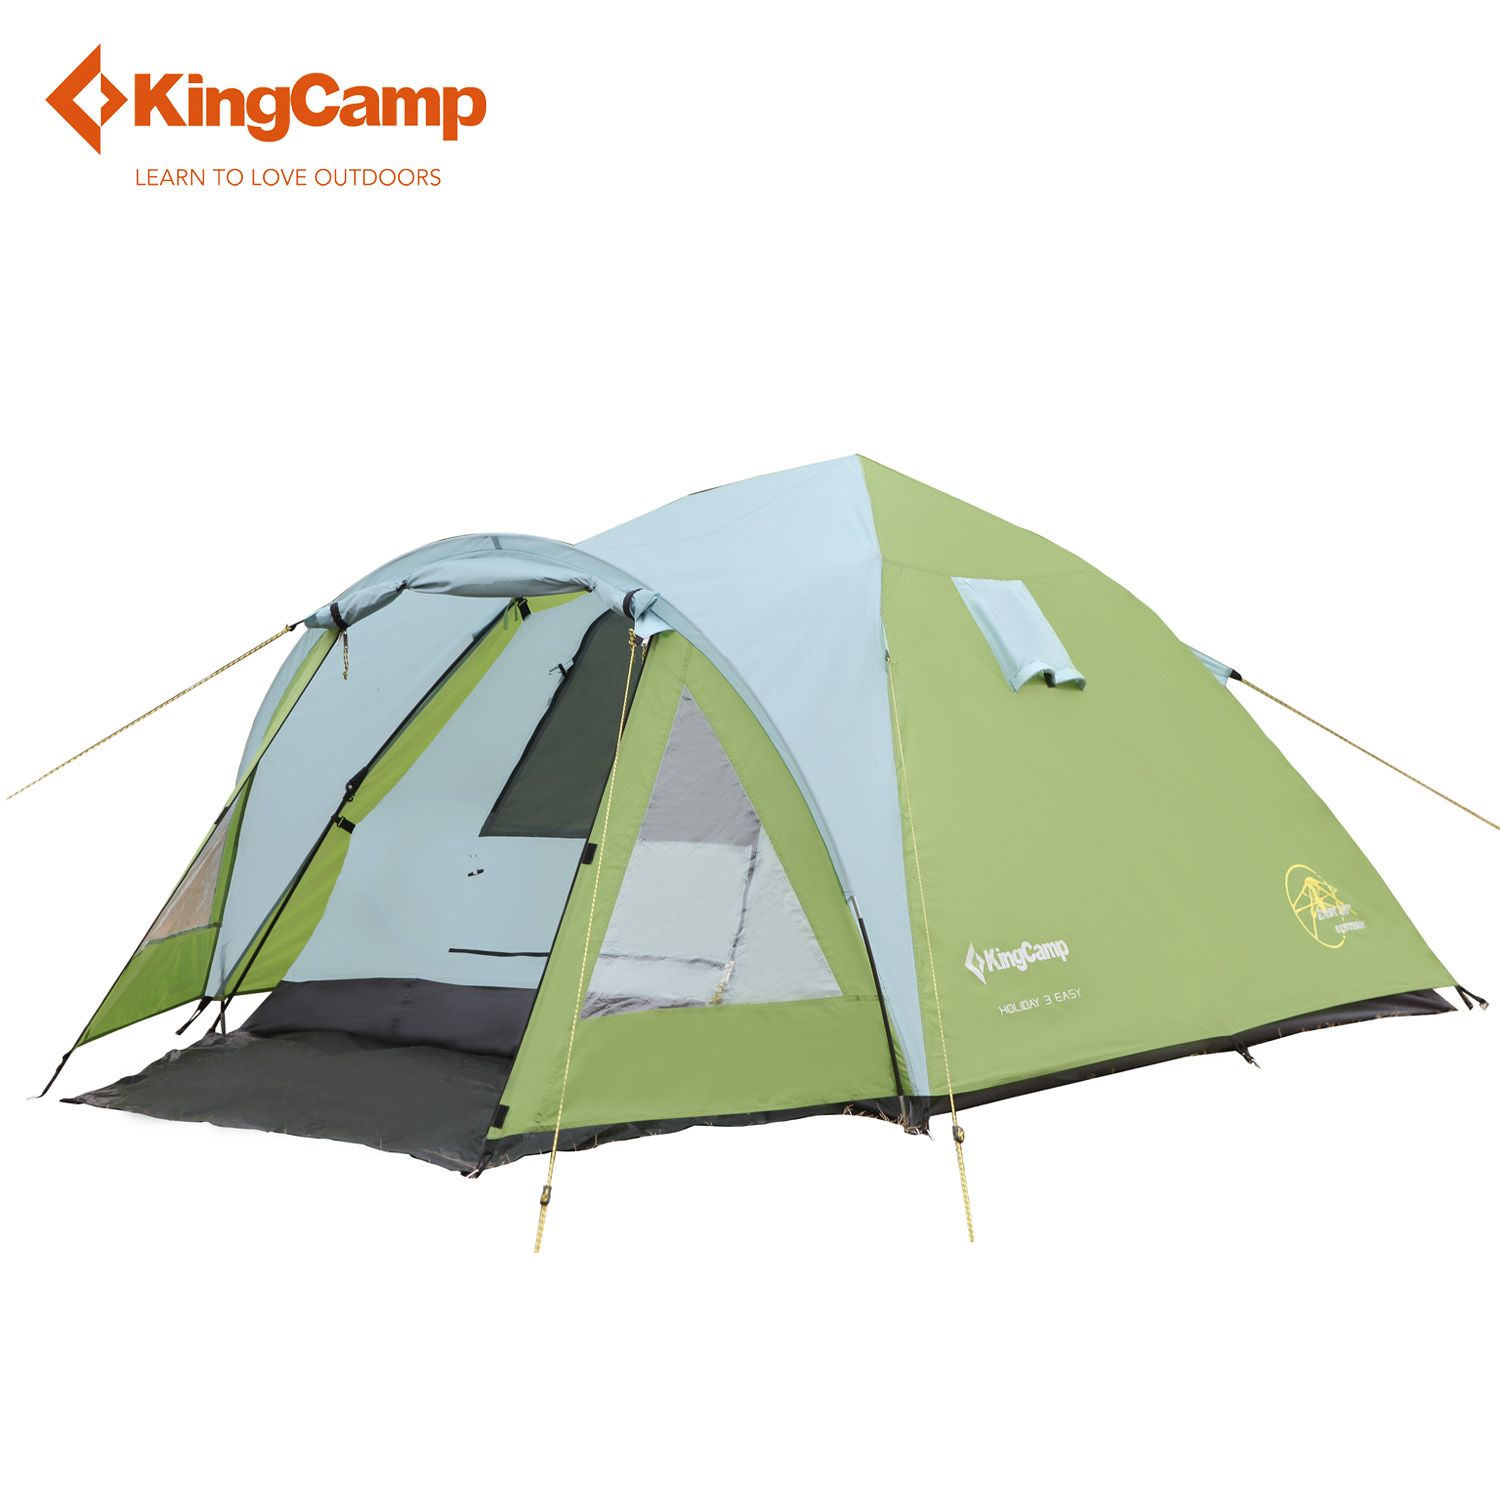 KingCamp One Room and One Hall Outdoor Tent 2-3 Person 3-Season Double-layers Waterproof Windproof Camping Party Family Tents